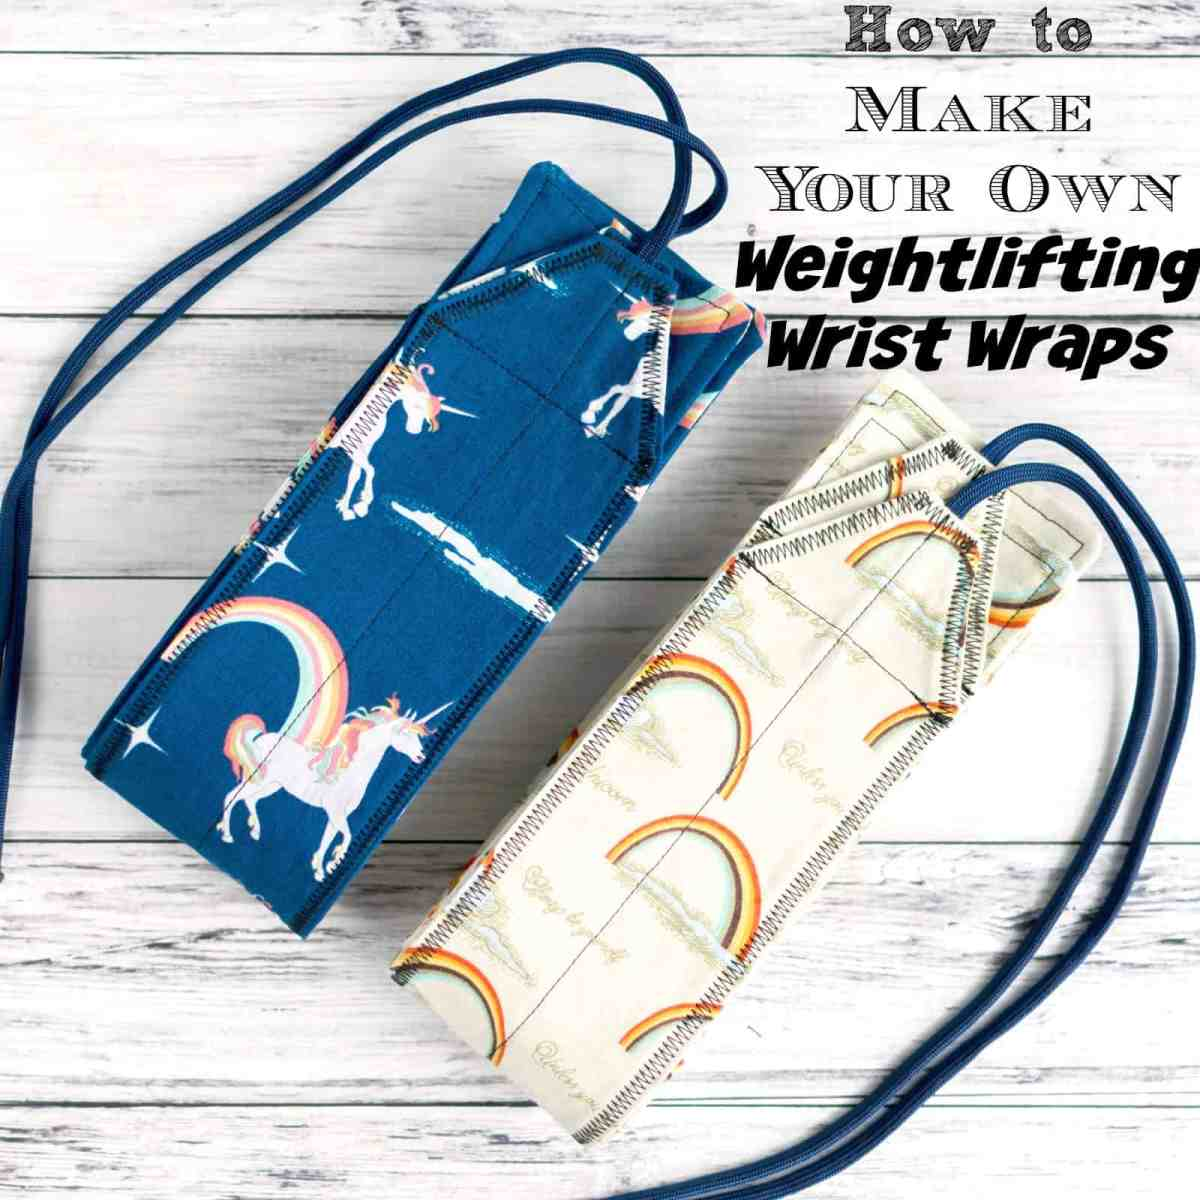 DIY Weightlifting Wrist Wraps Tutorial + Pattern